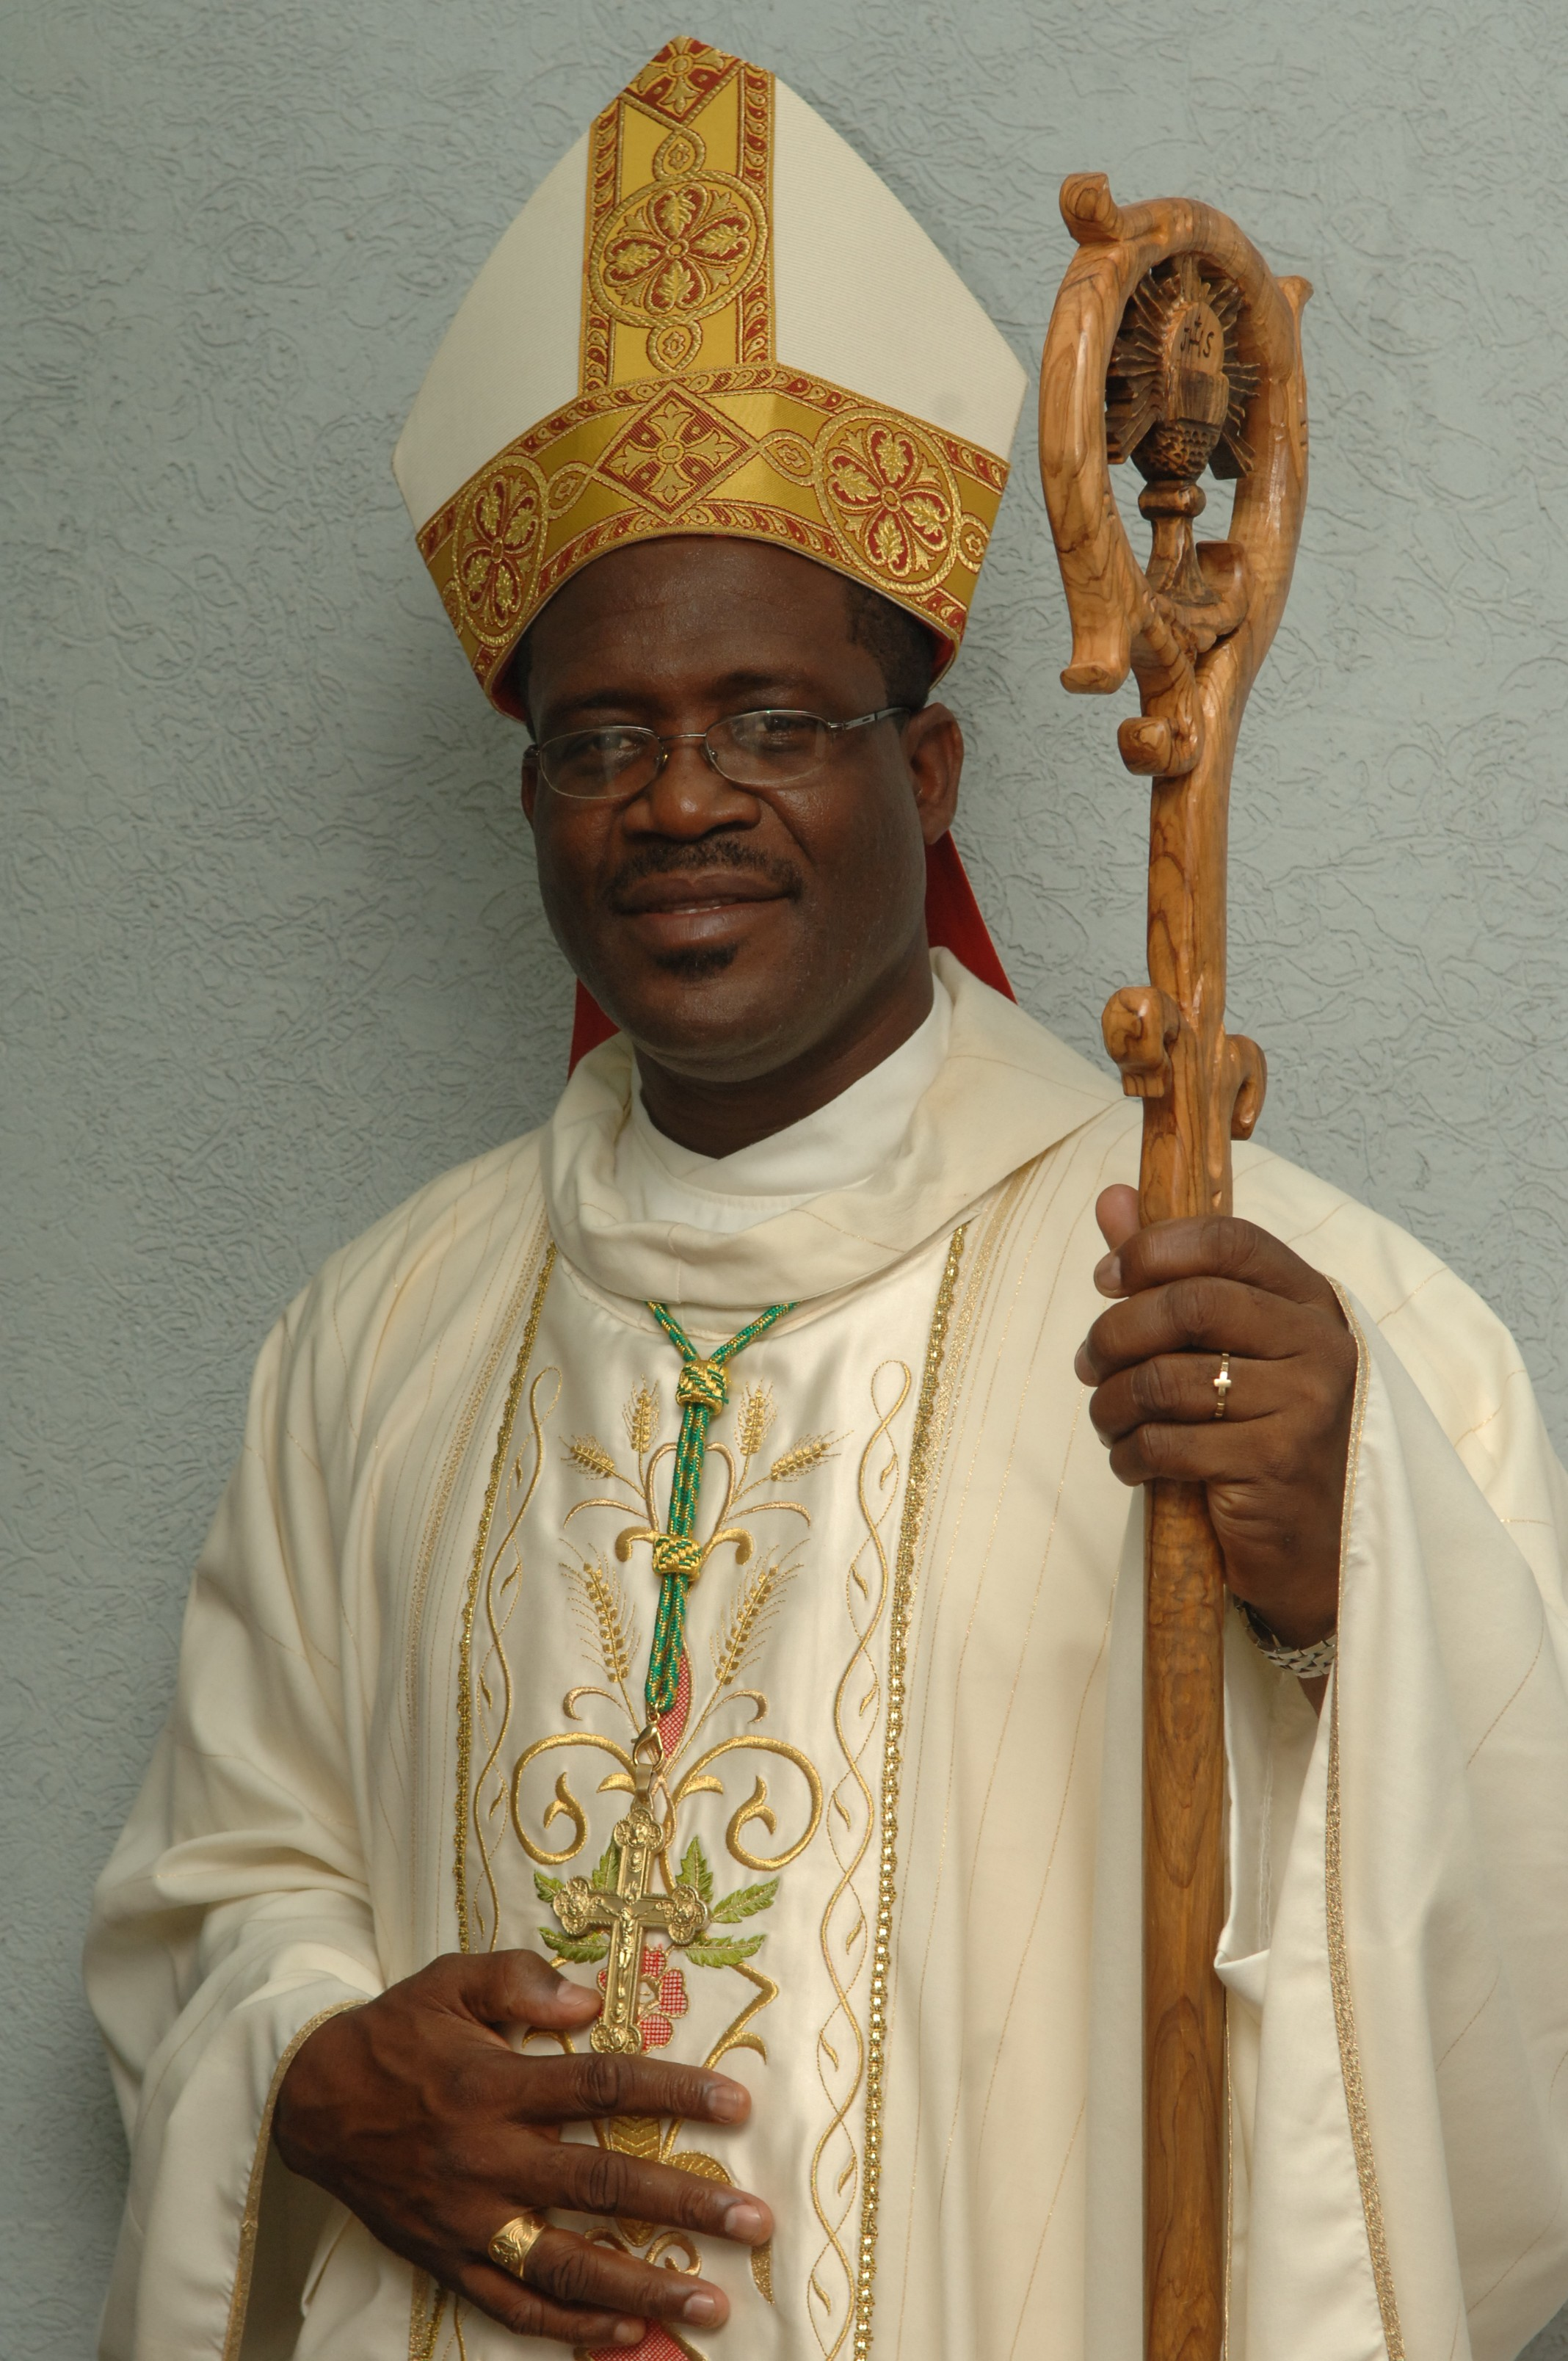 Bishop Malzaire speaks out Bishop